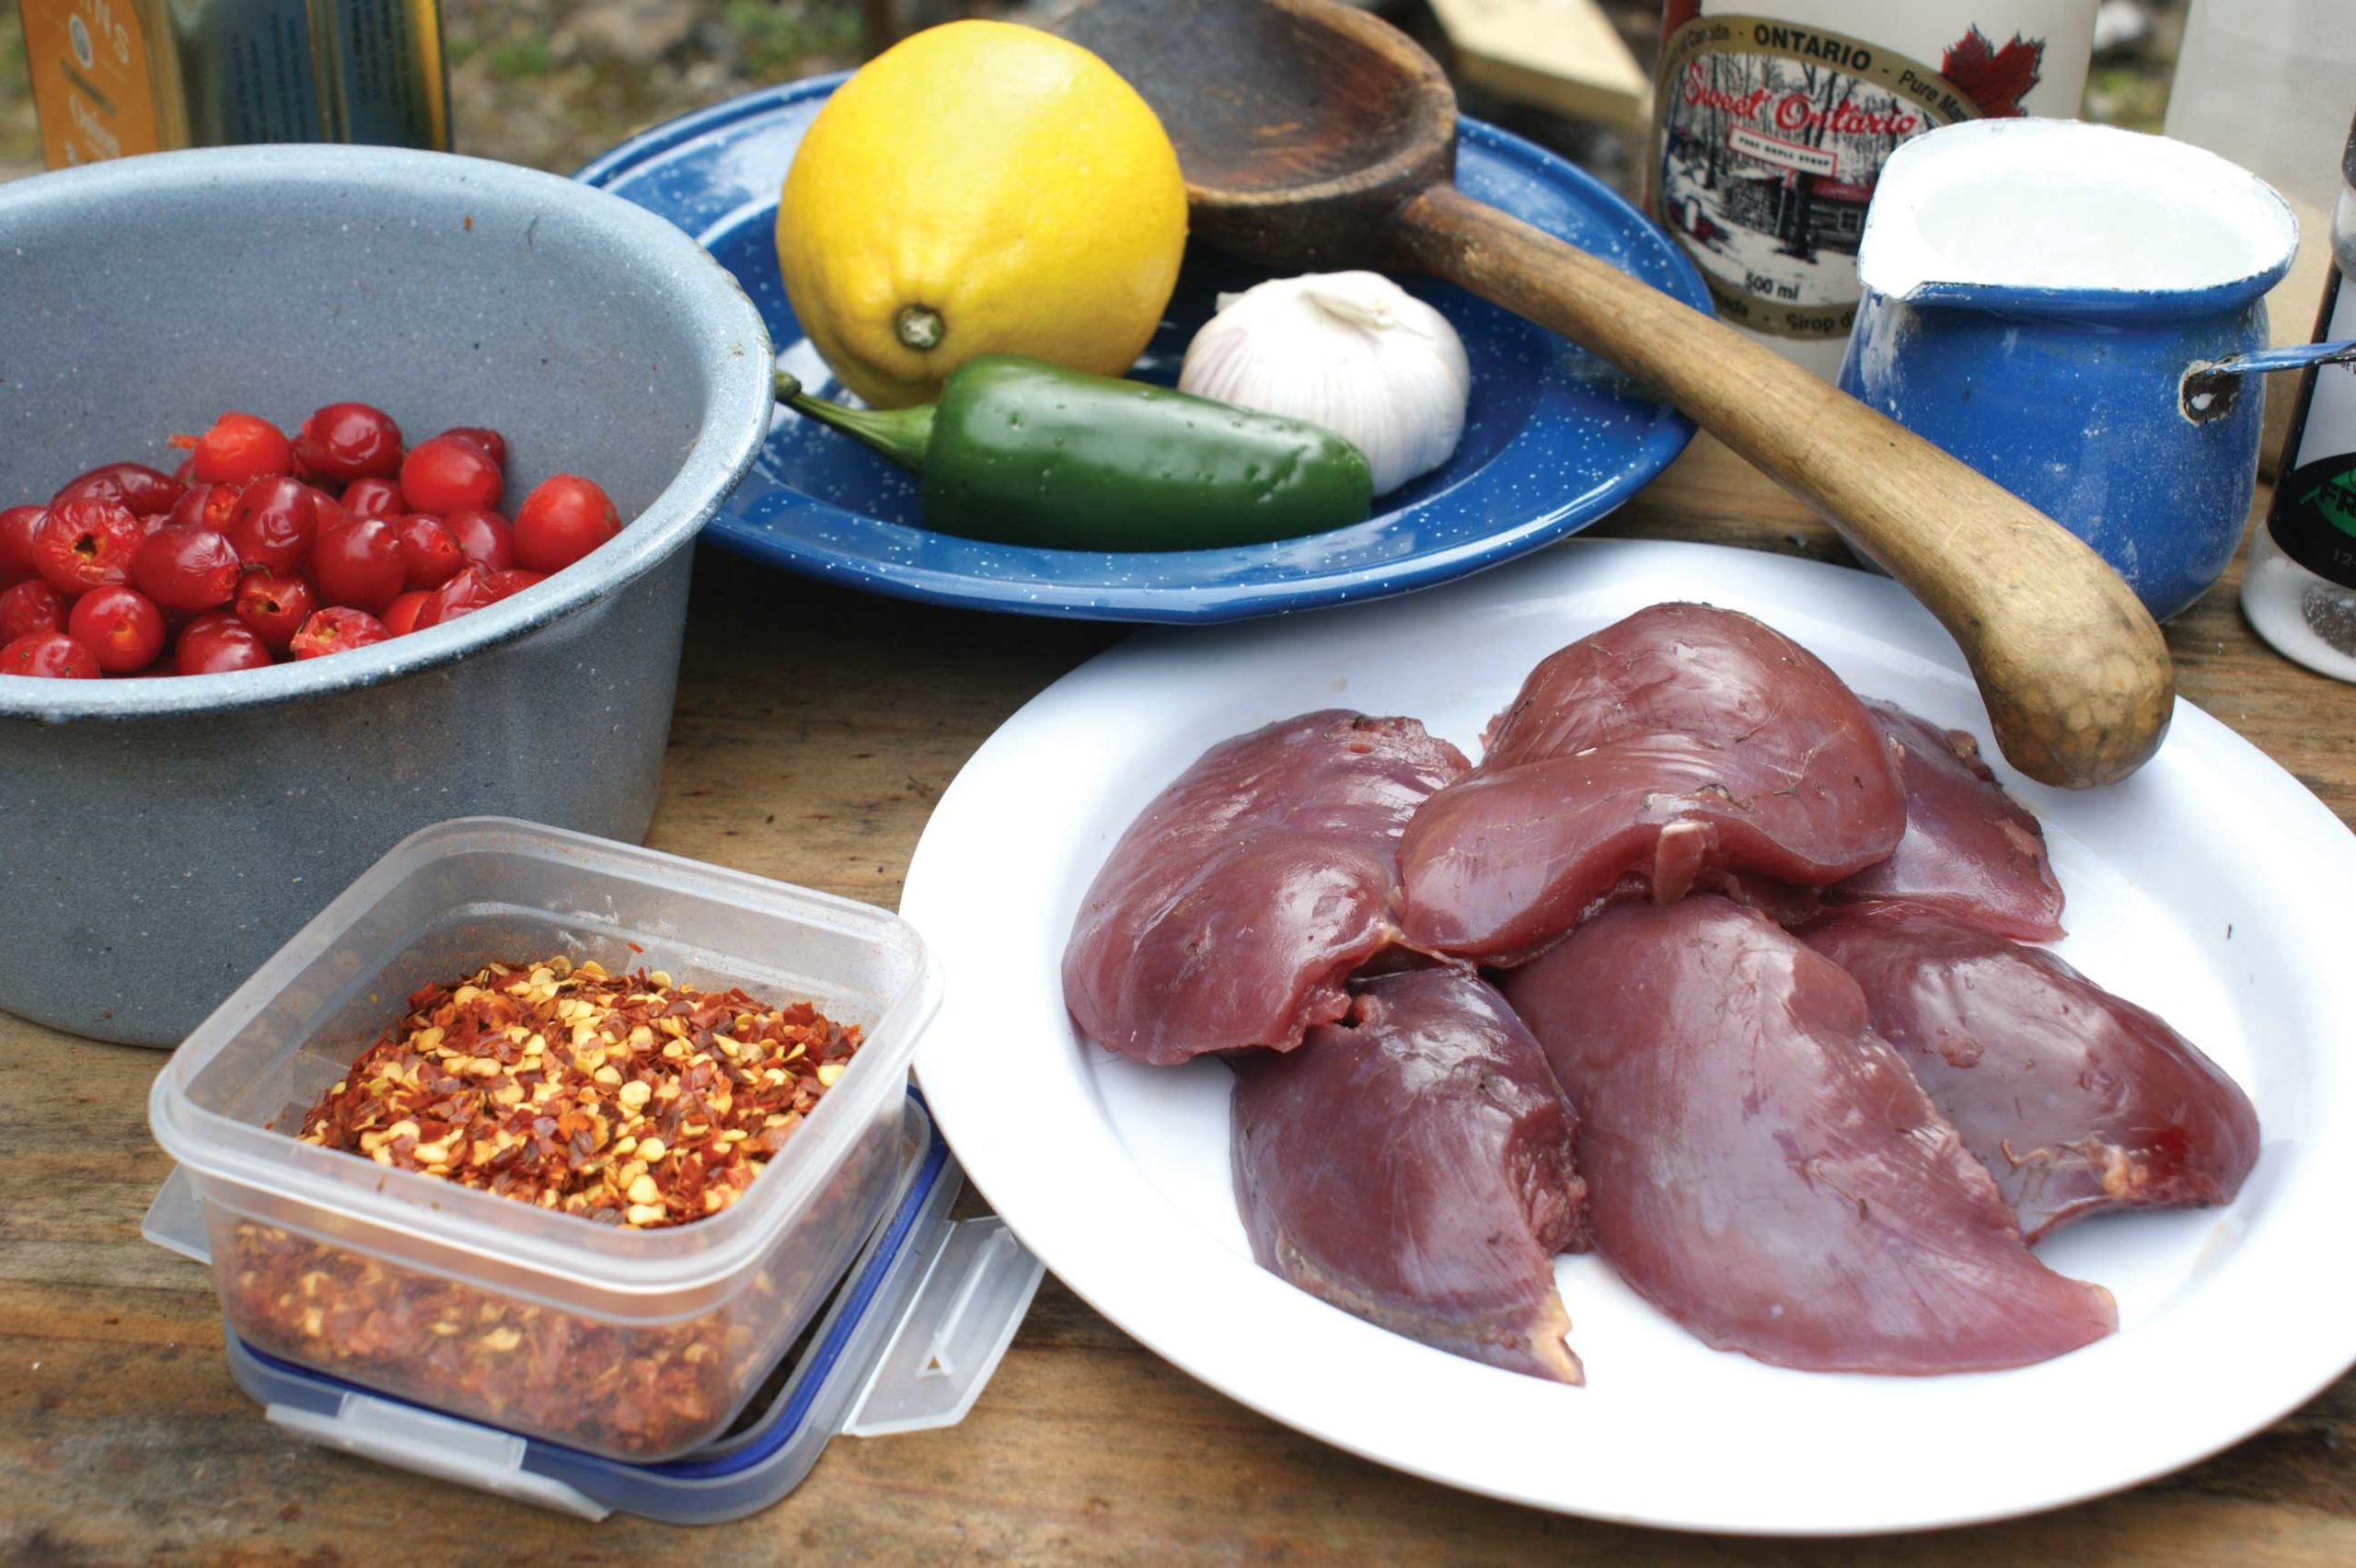 Grouse and rosehip supper fixings.